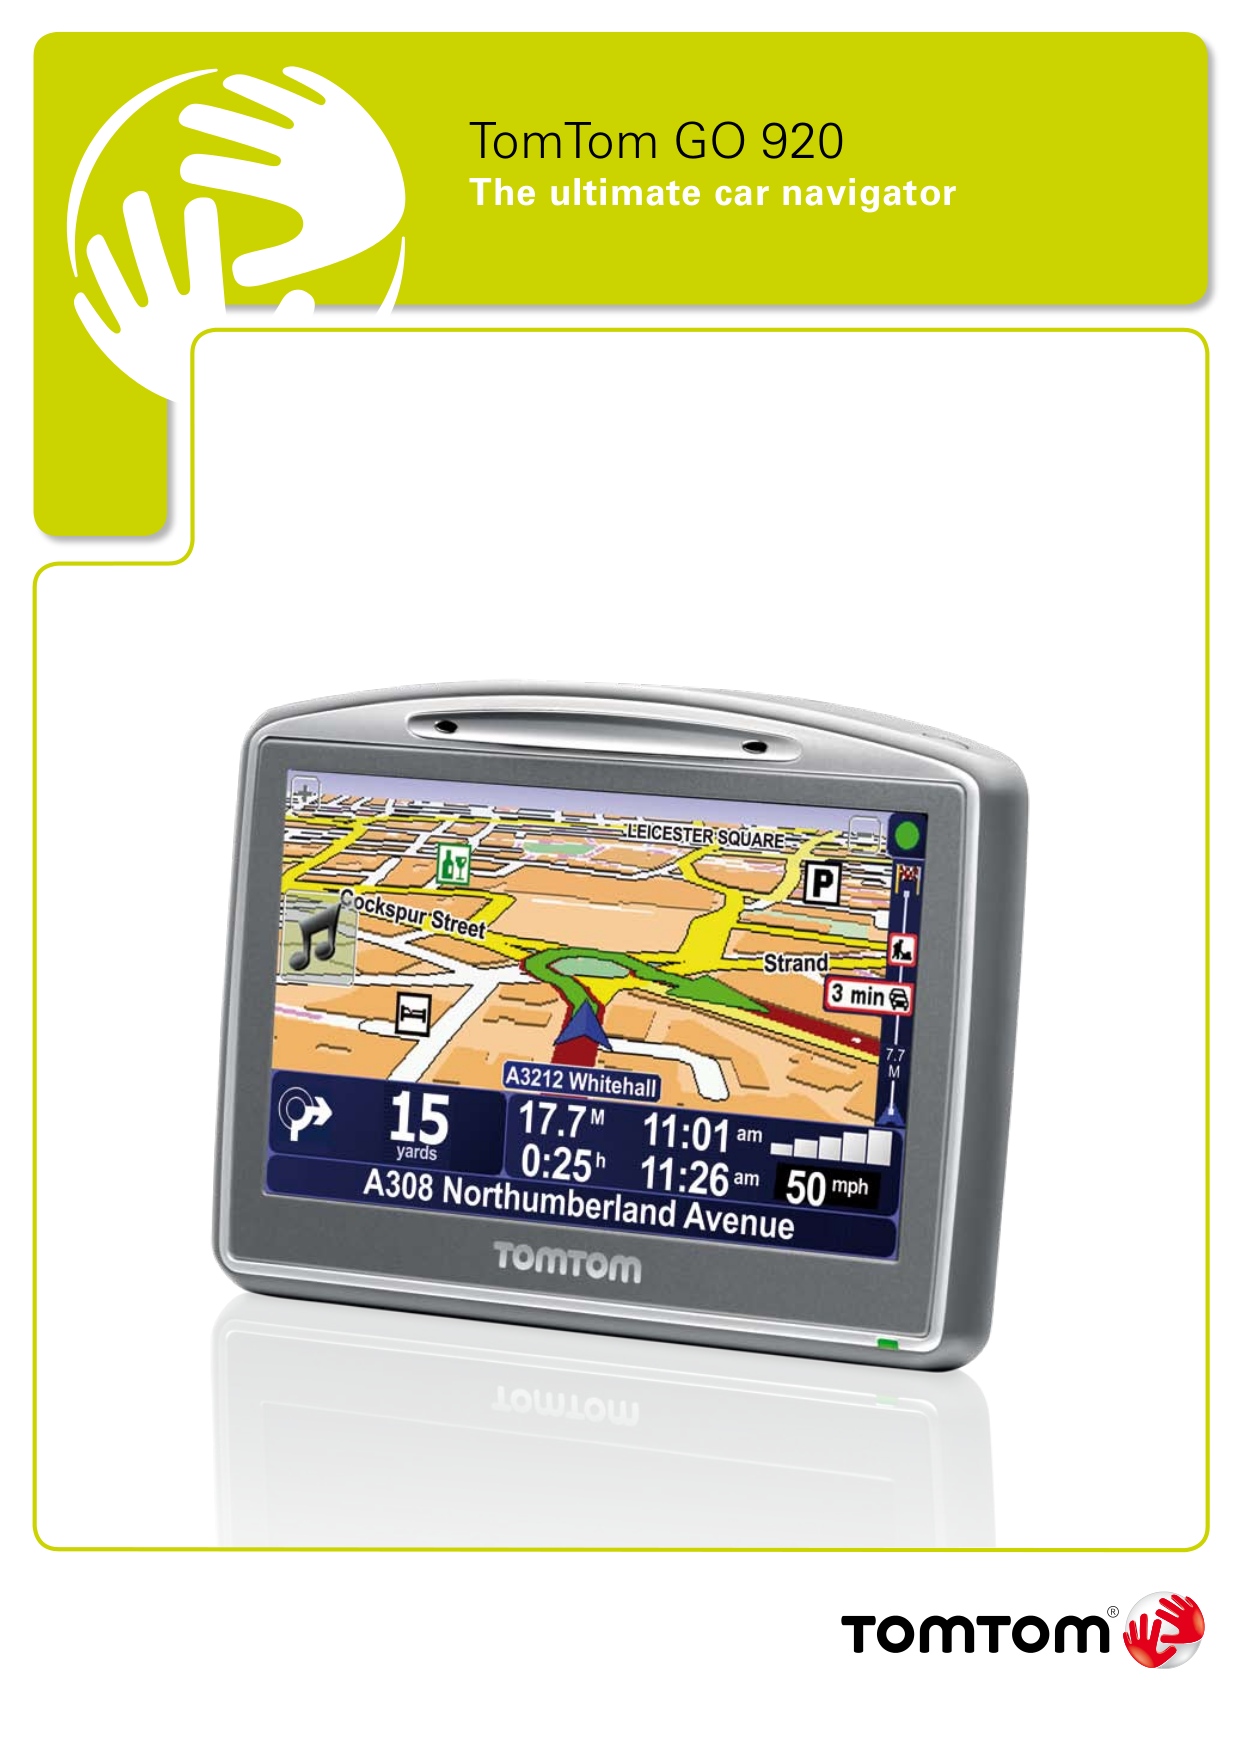 Tomtom one xl manual download pdf for tomtom gps go 920 manual fandeluxe Choice Image